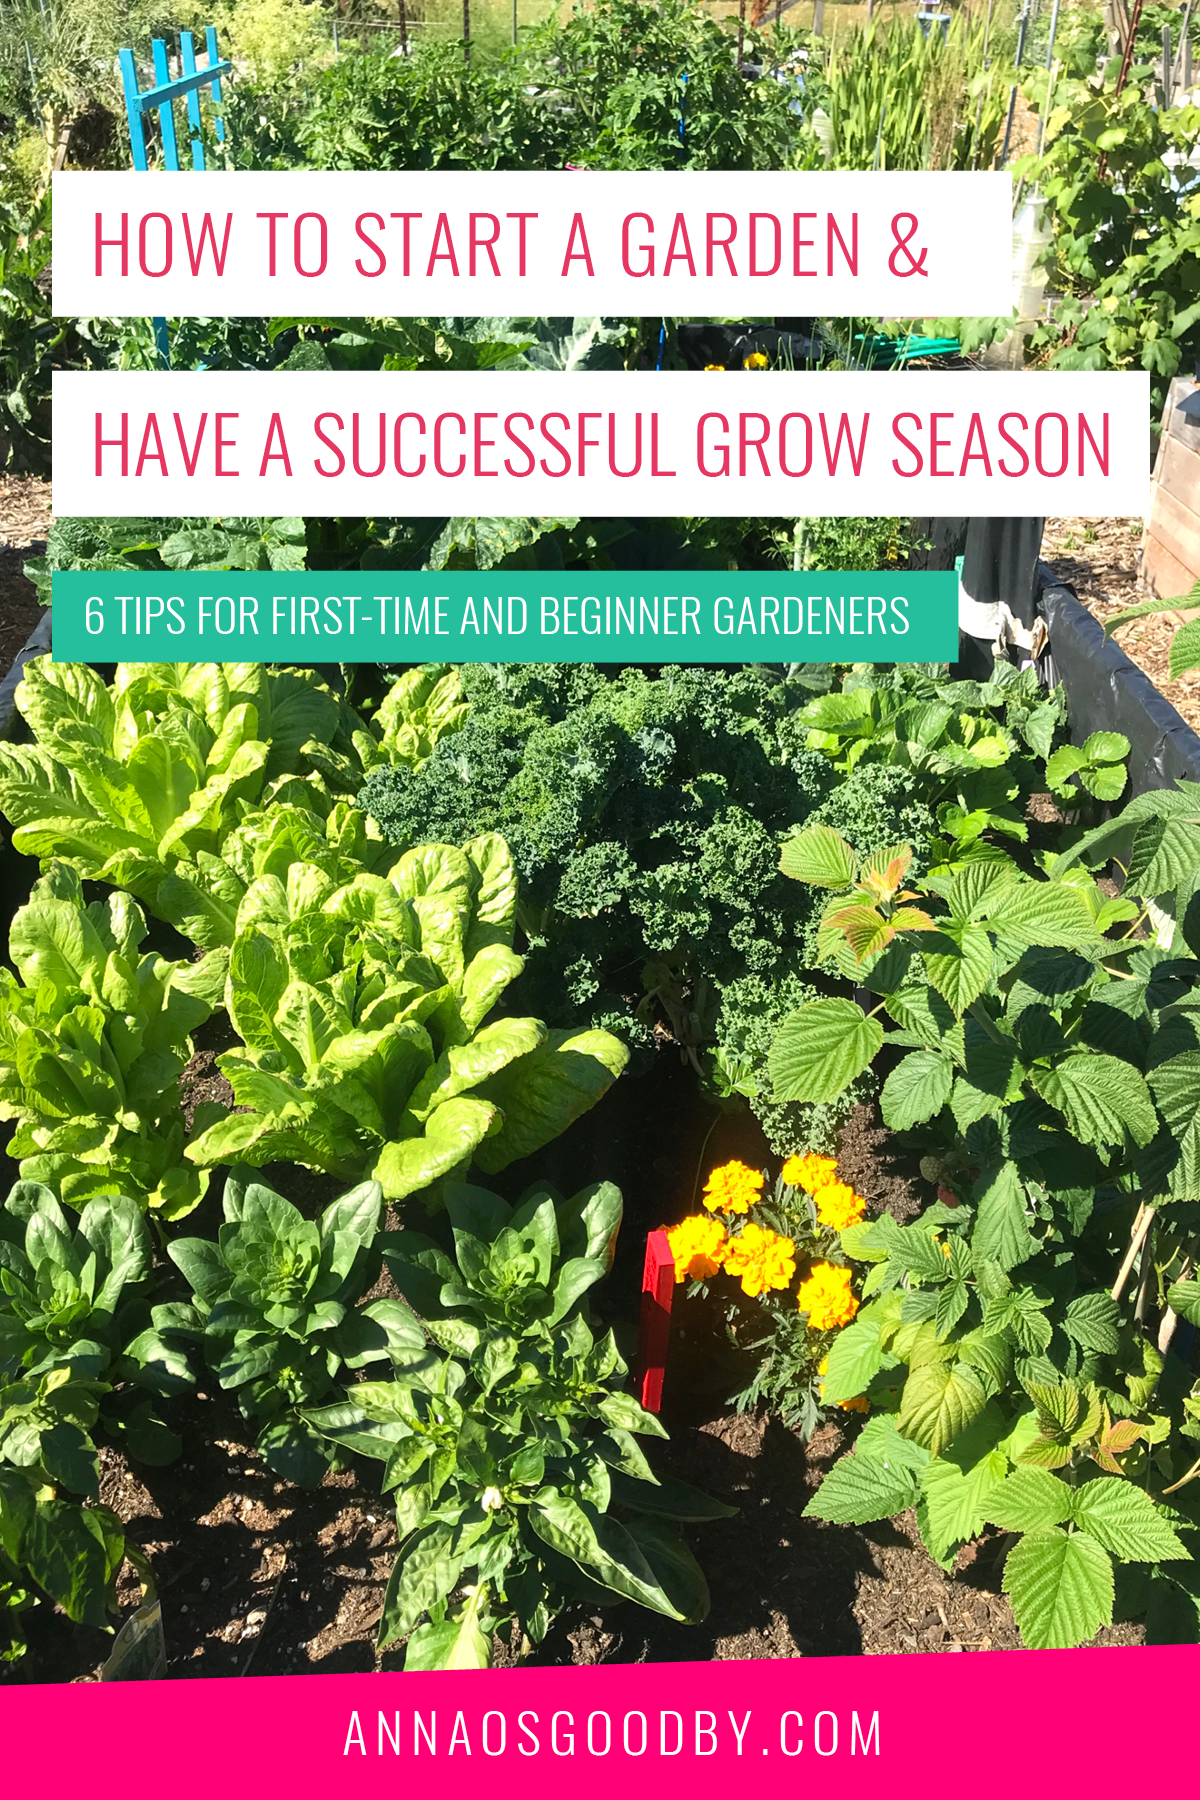 Anna Osgoodby Life + Biz :: How to Start a Garden and Have a Successful Grow Season :: 6 Tips for First-Time and Beginner Gardeners